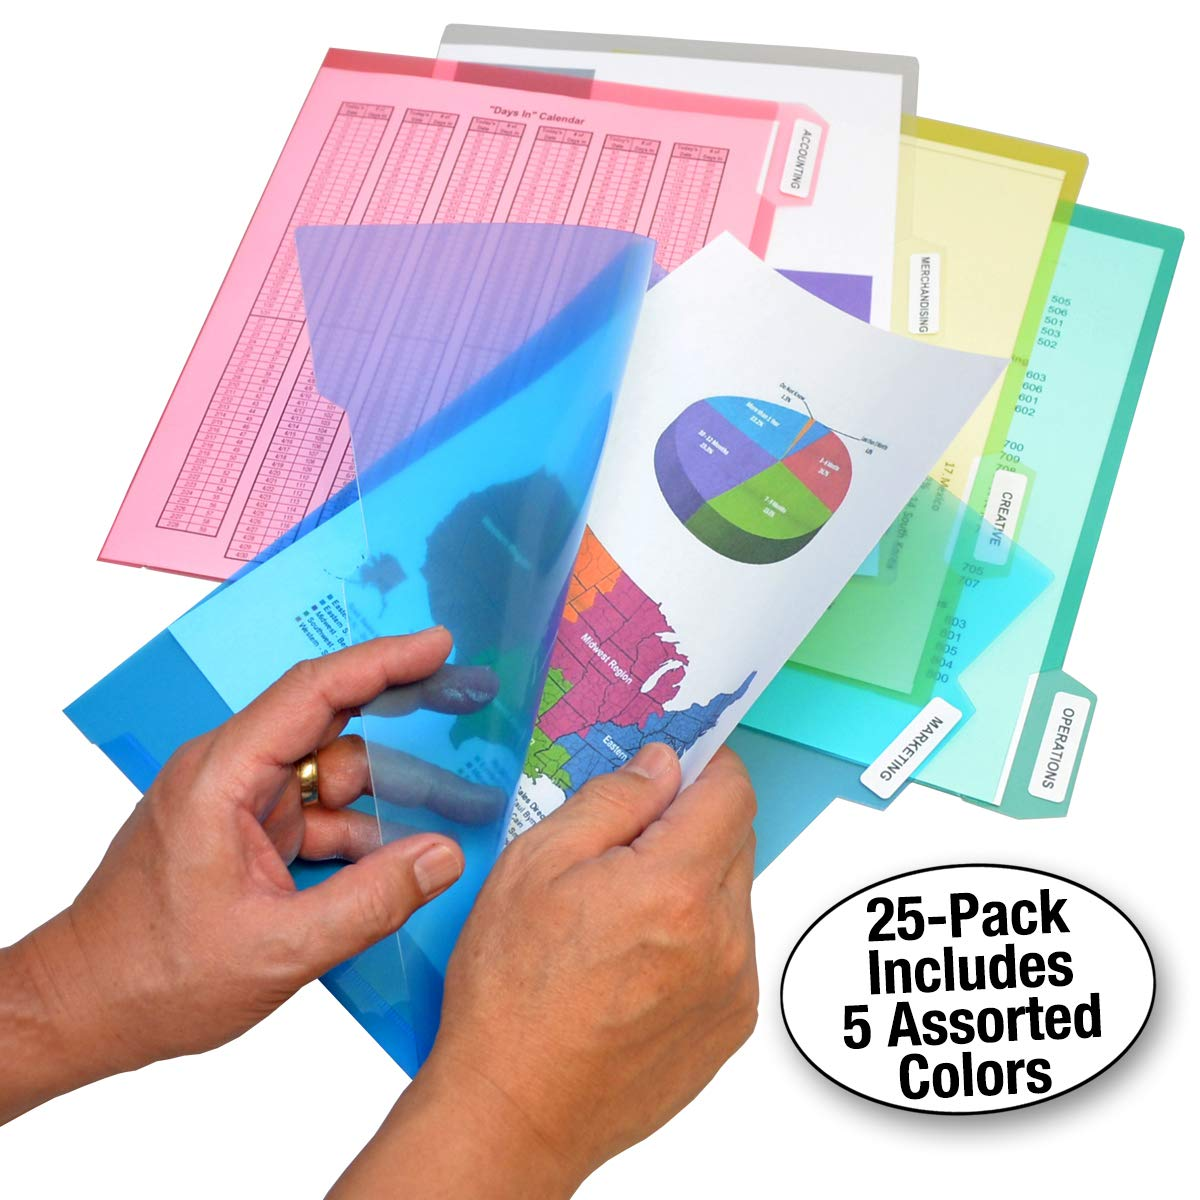 Ultimate Office PocketFile Clear Poly Document Folder Project Pockets, 5th-Cut, Letter Size, in 5 Assorted Colors, Set of 25 by Ultimate Office